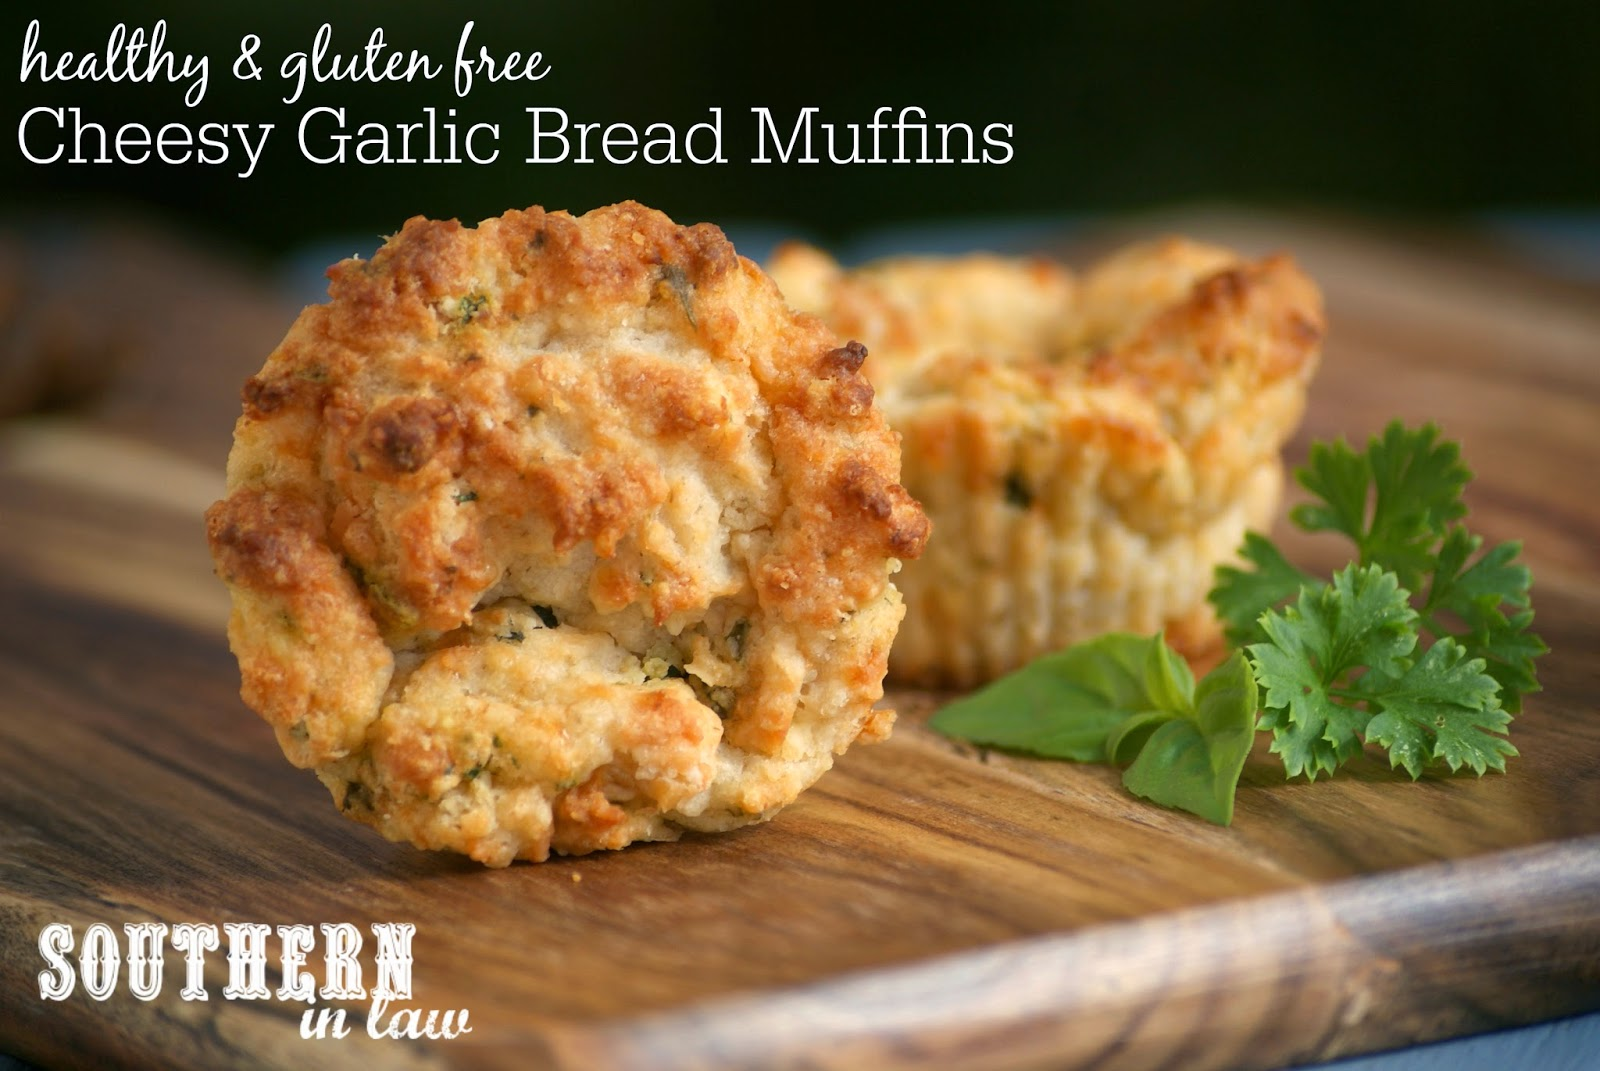 Healthy Cheesy Garlic Bread Muffins Recipe - Low Fat Gluten Free Cheese, Herb and Garlic Muffins